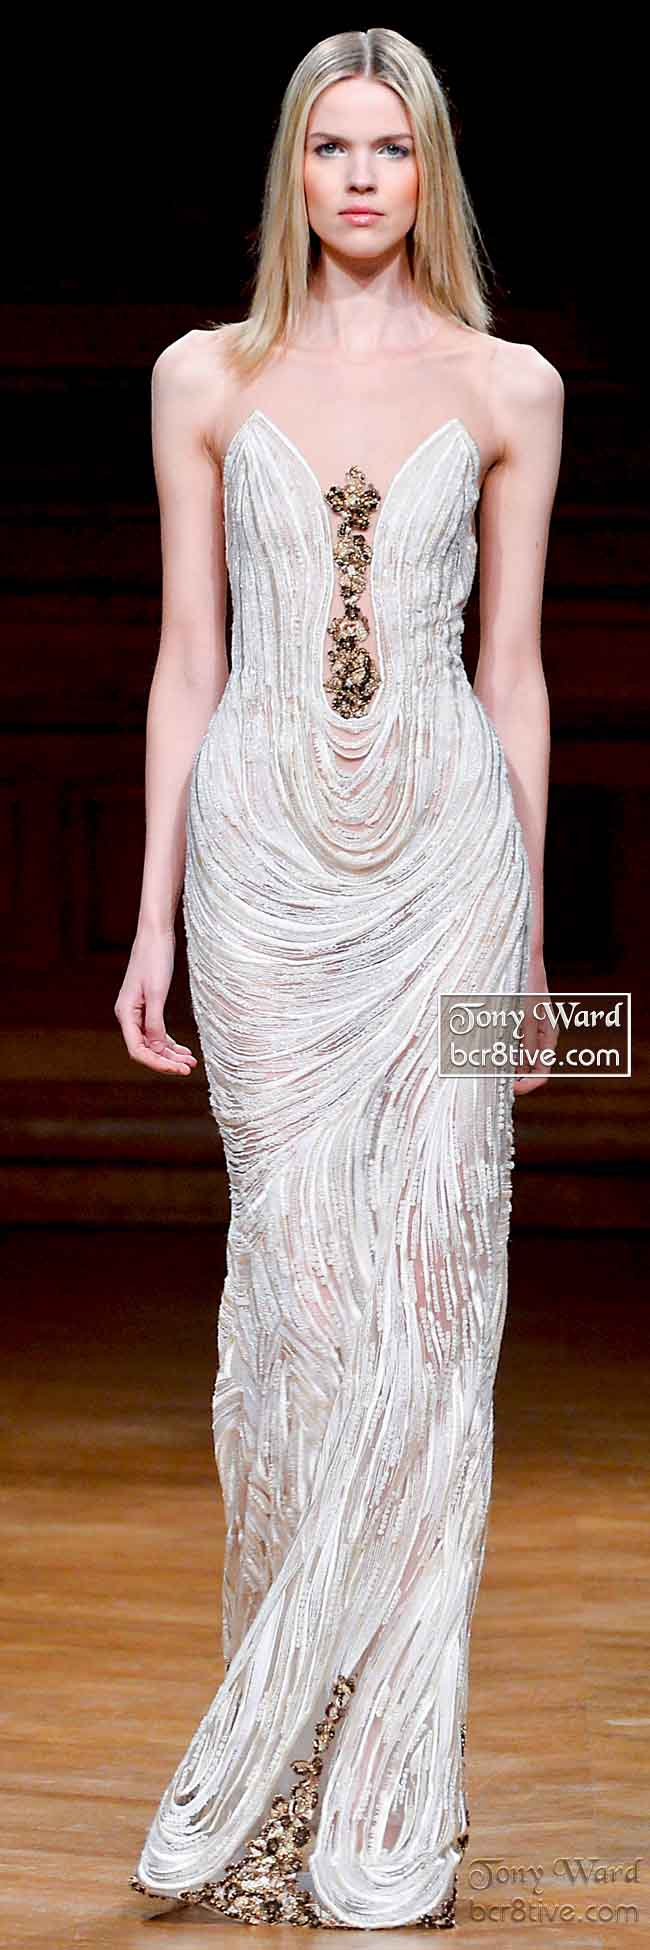 Artfully Beaded Evening Gown